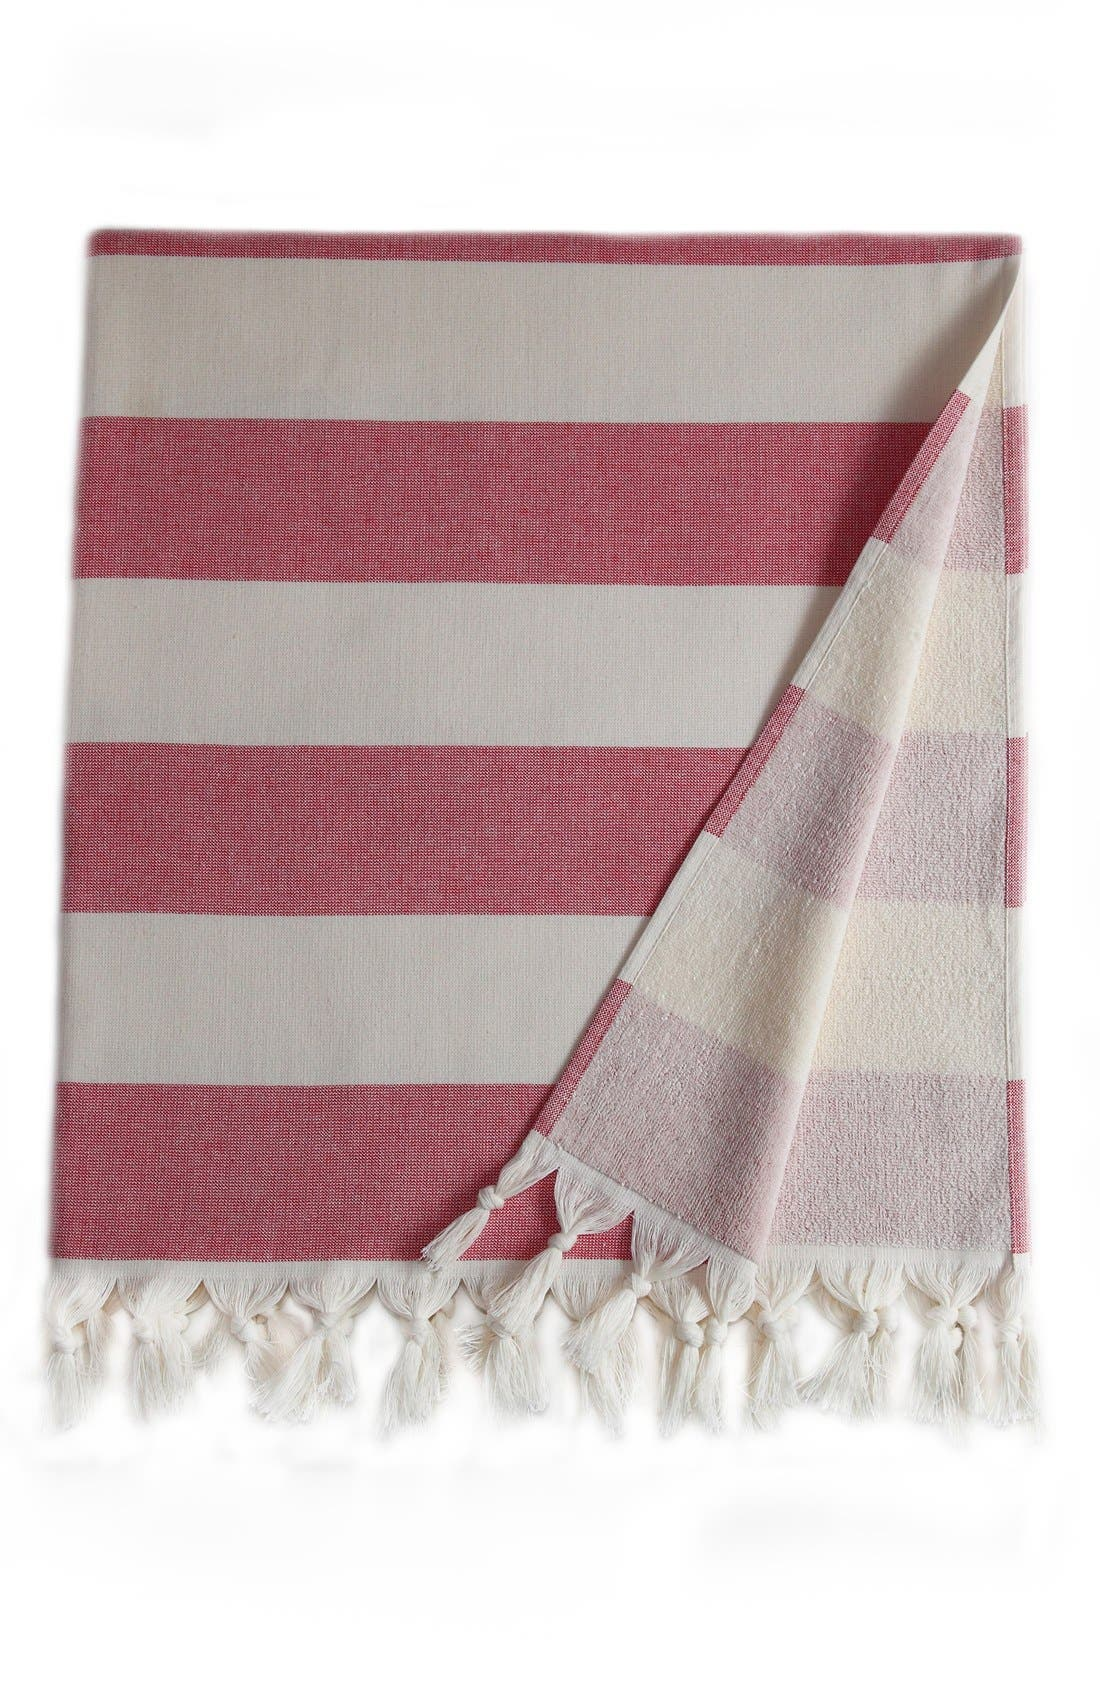 Main Image - Linum Home Textiles 'Patara' Turkish Pestemal Towel